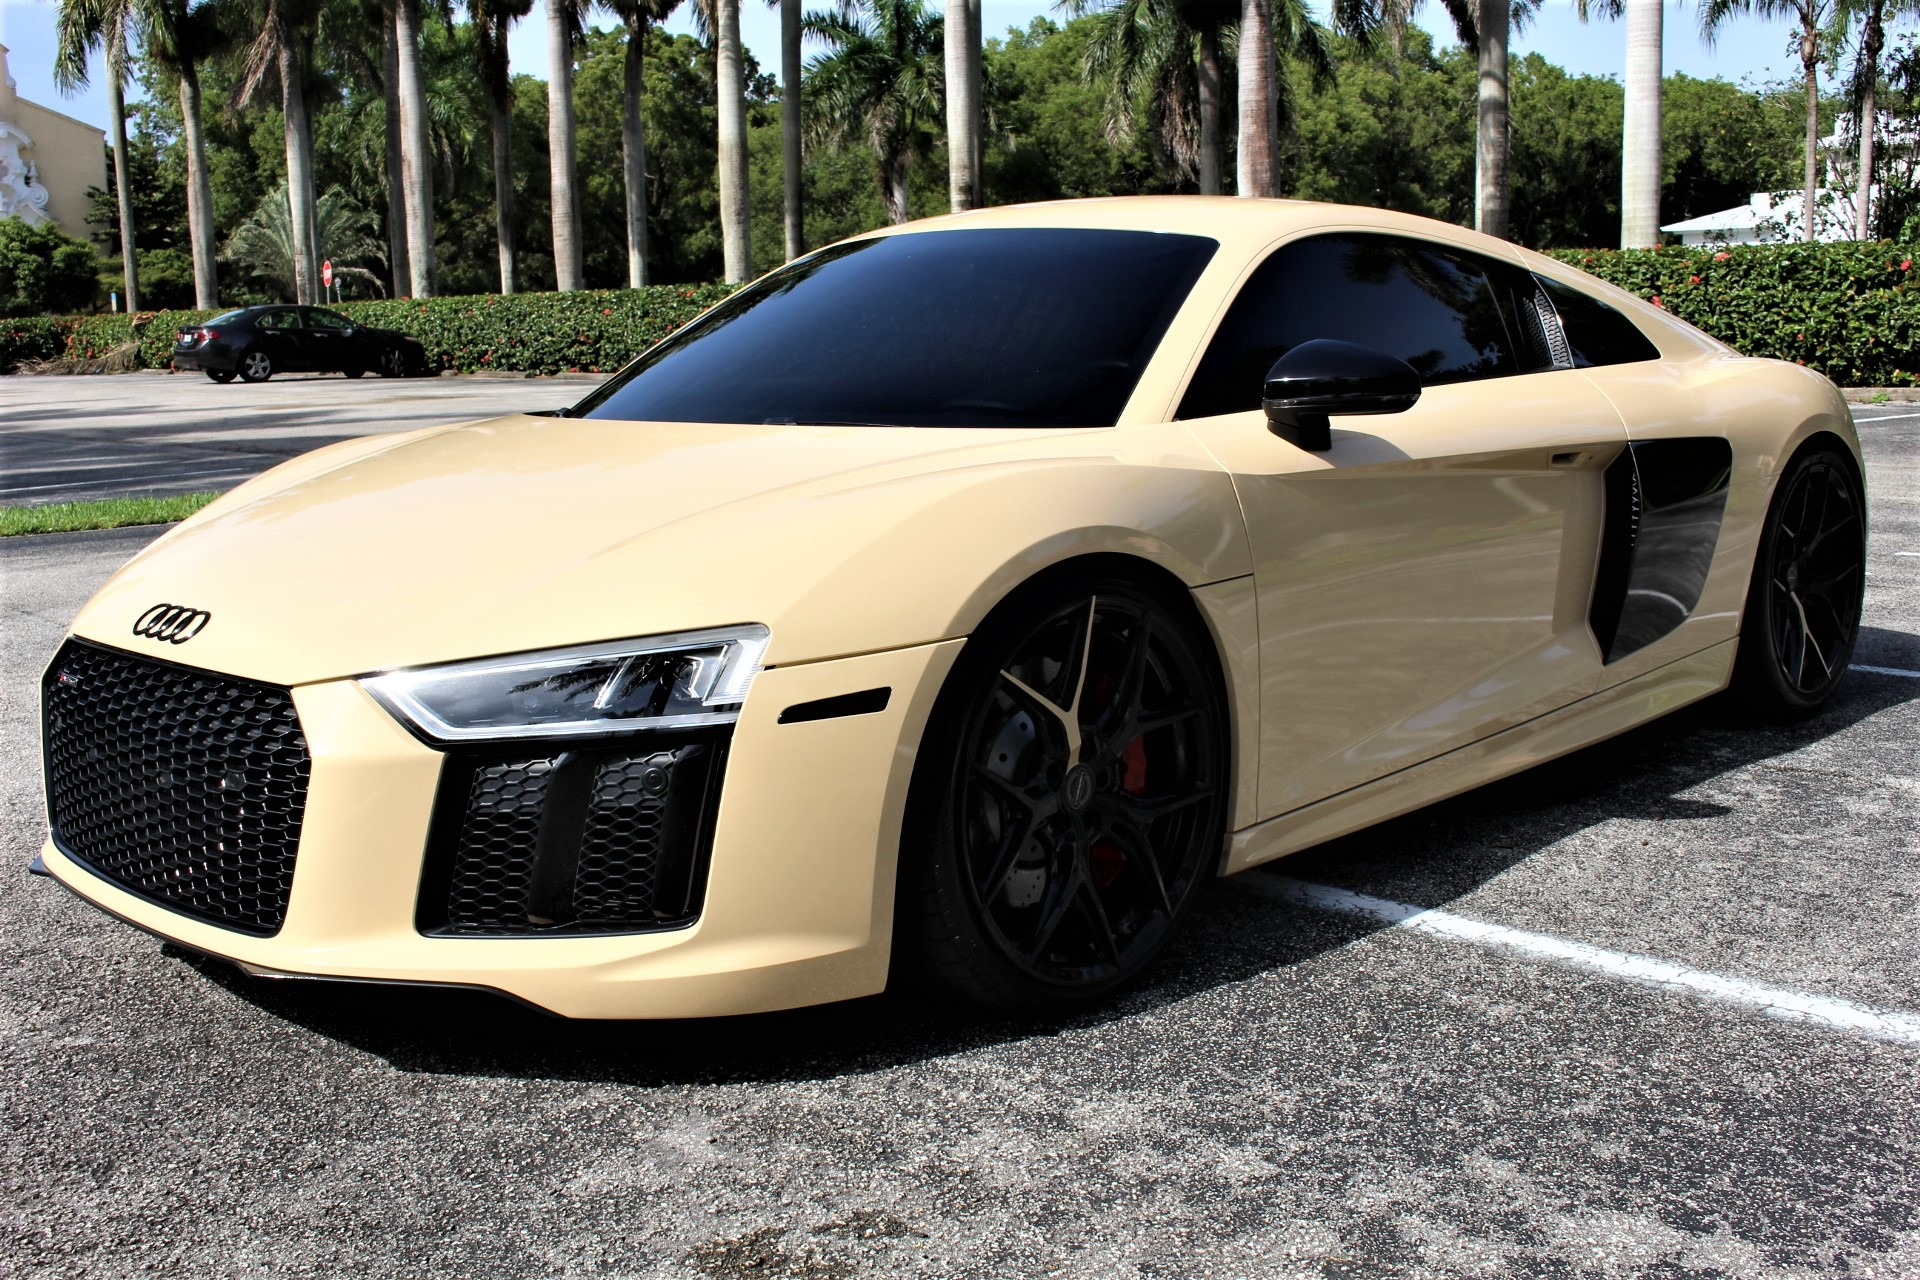 Used 2018 Audi R8 5.2 V10 RWS Twin Turbo for sale $189,850 at The Gables Sports Cars in Miami FL 33146 3